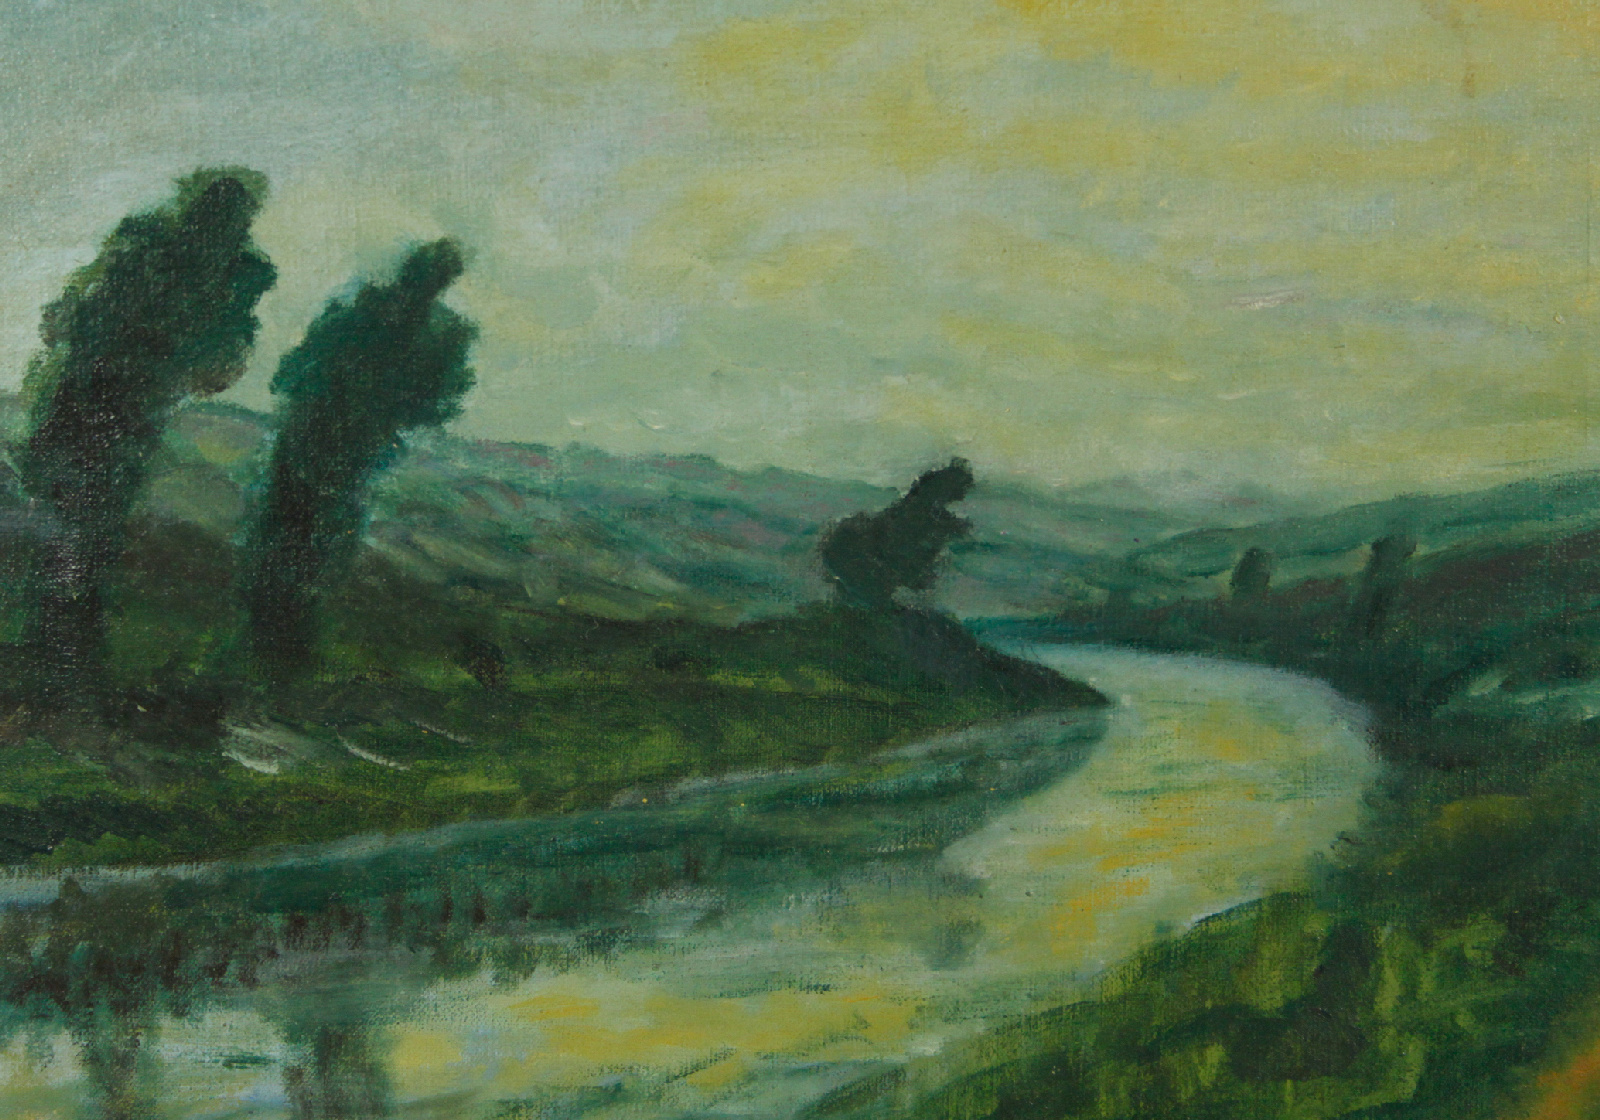 Vintage Landscape River Banks Oil Painting Ebay